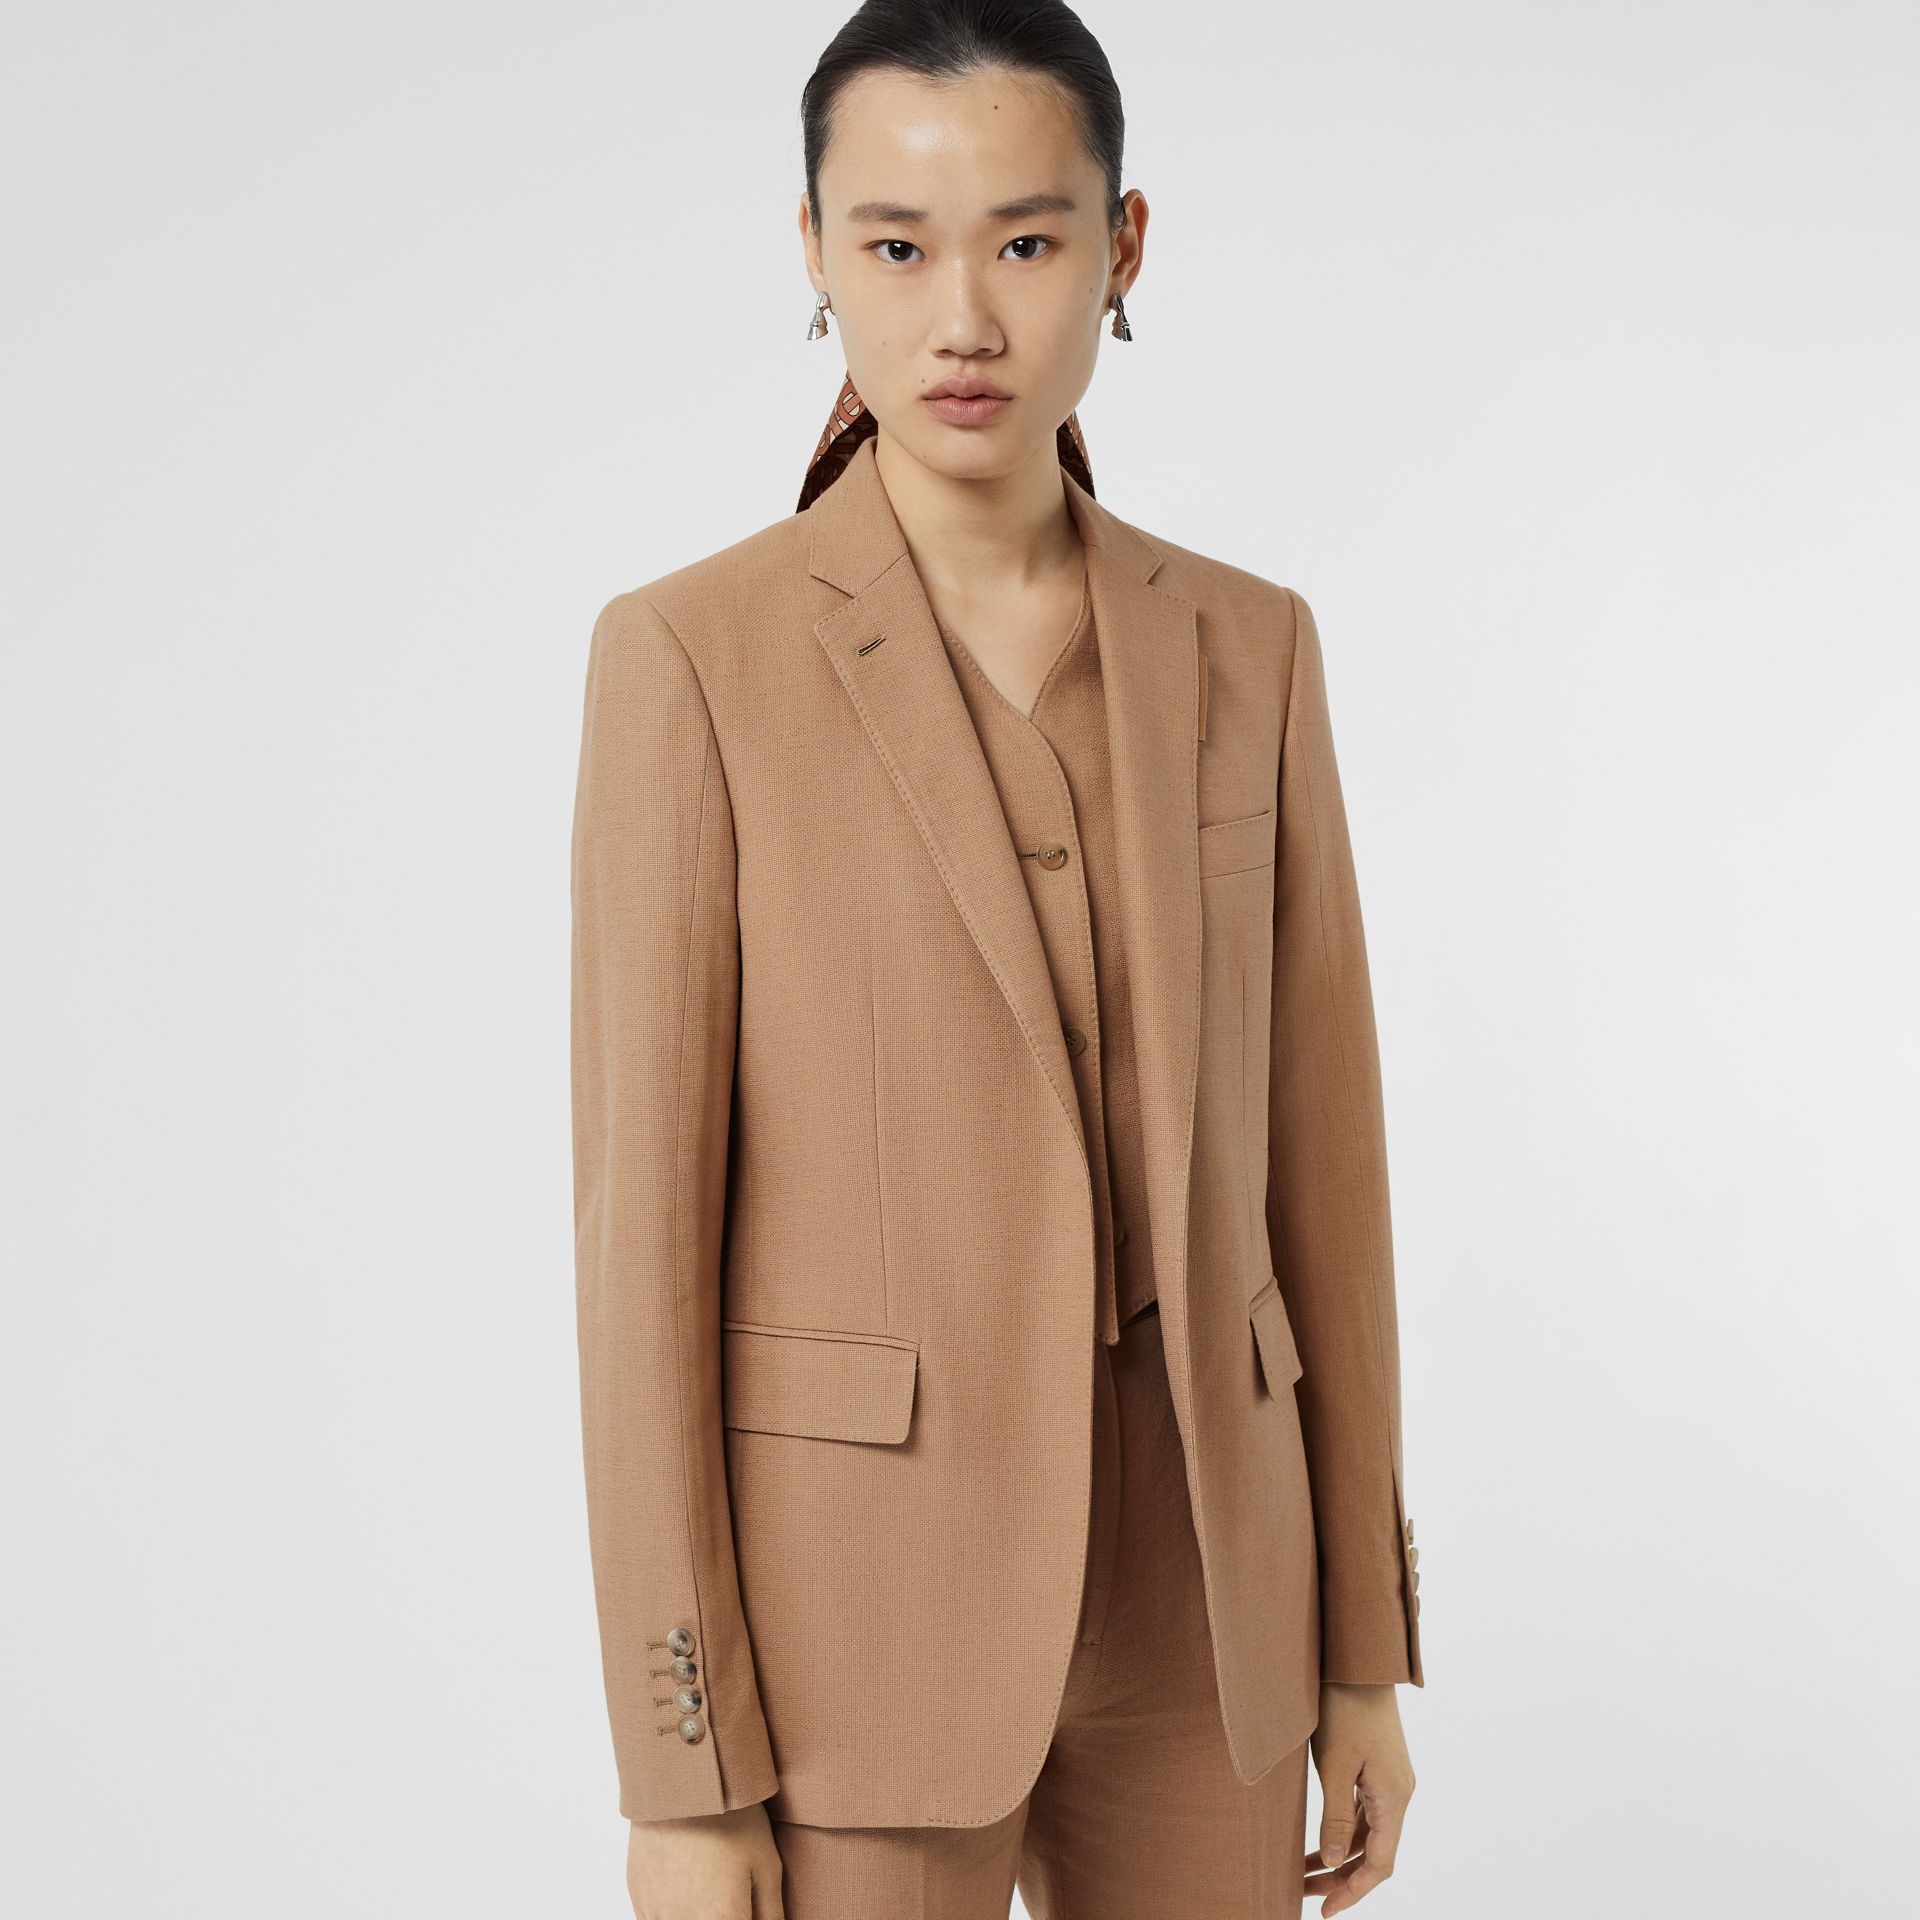 Vest Detail Cotton Linen Tailored Jacket in Ceramic Brown - Women | Burberry United States - gallery image 4